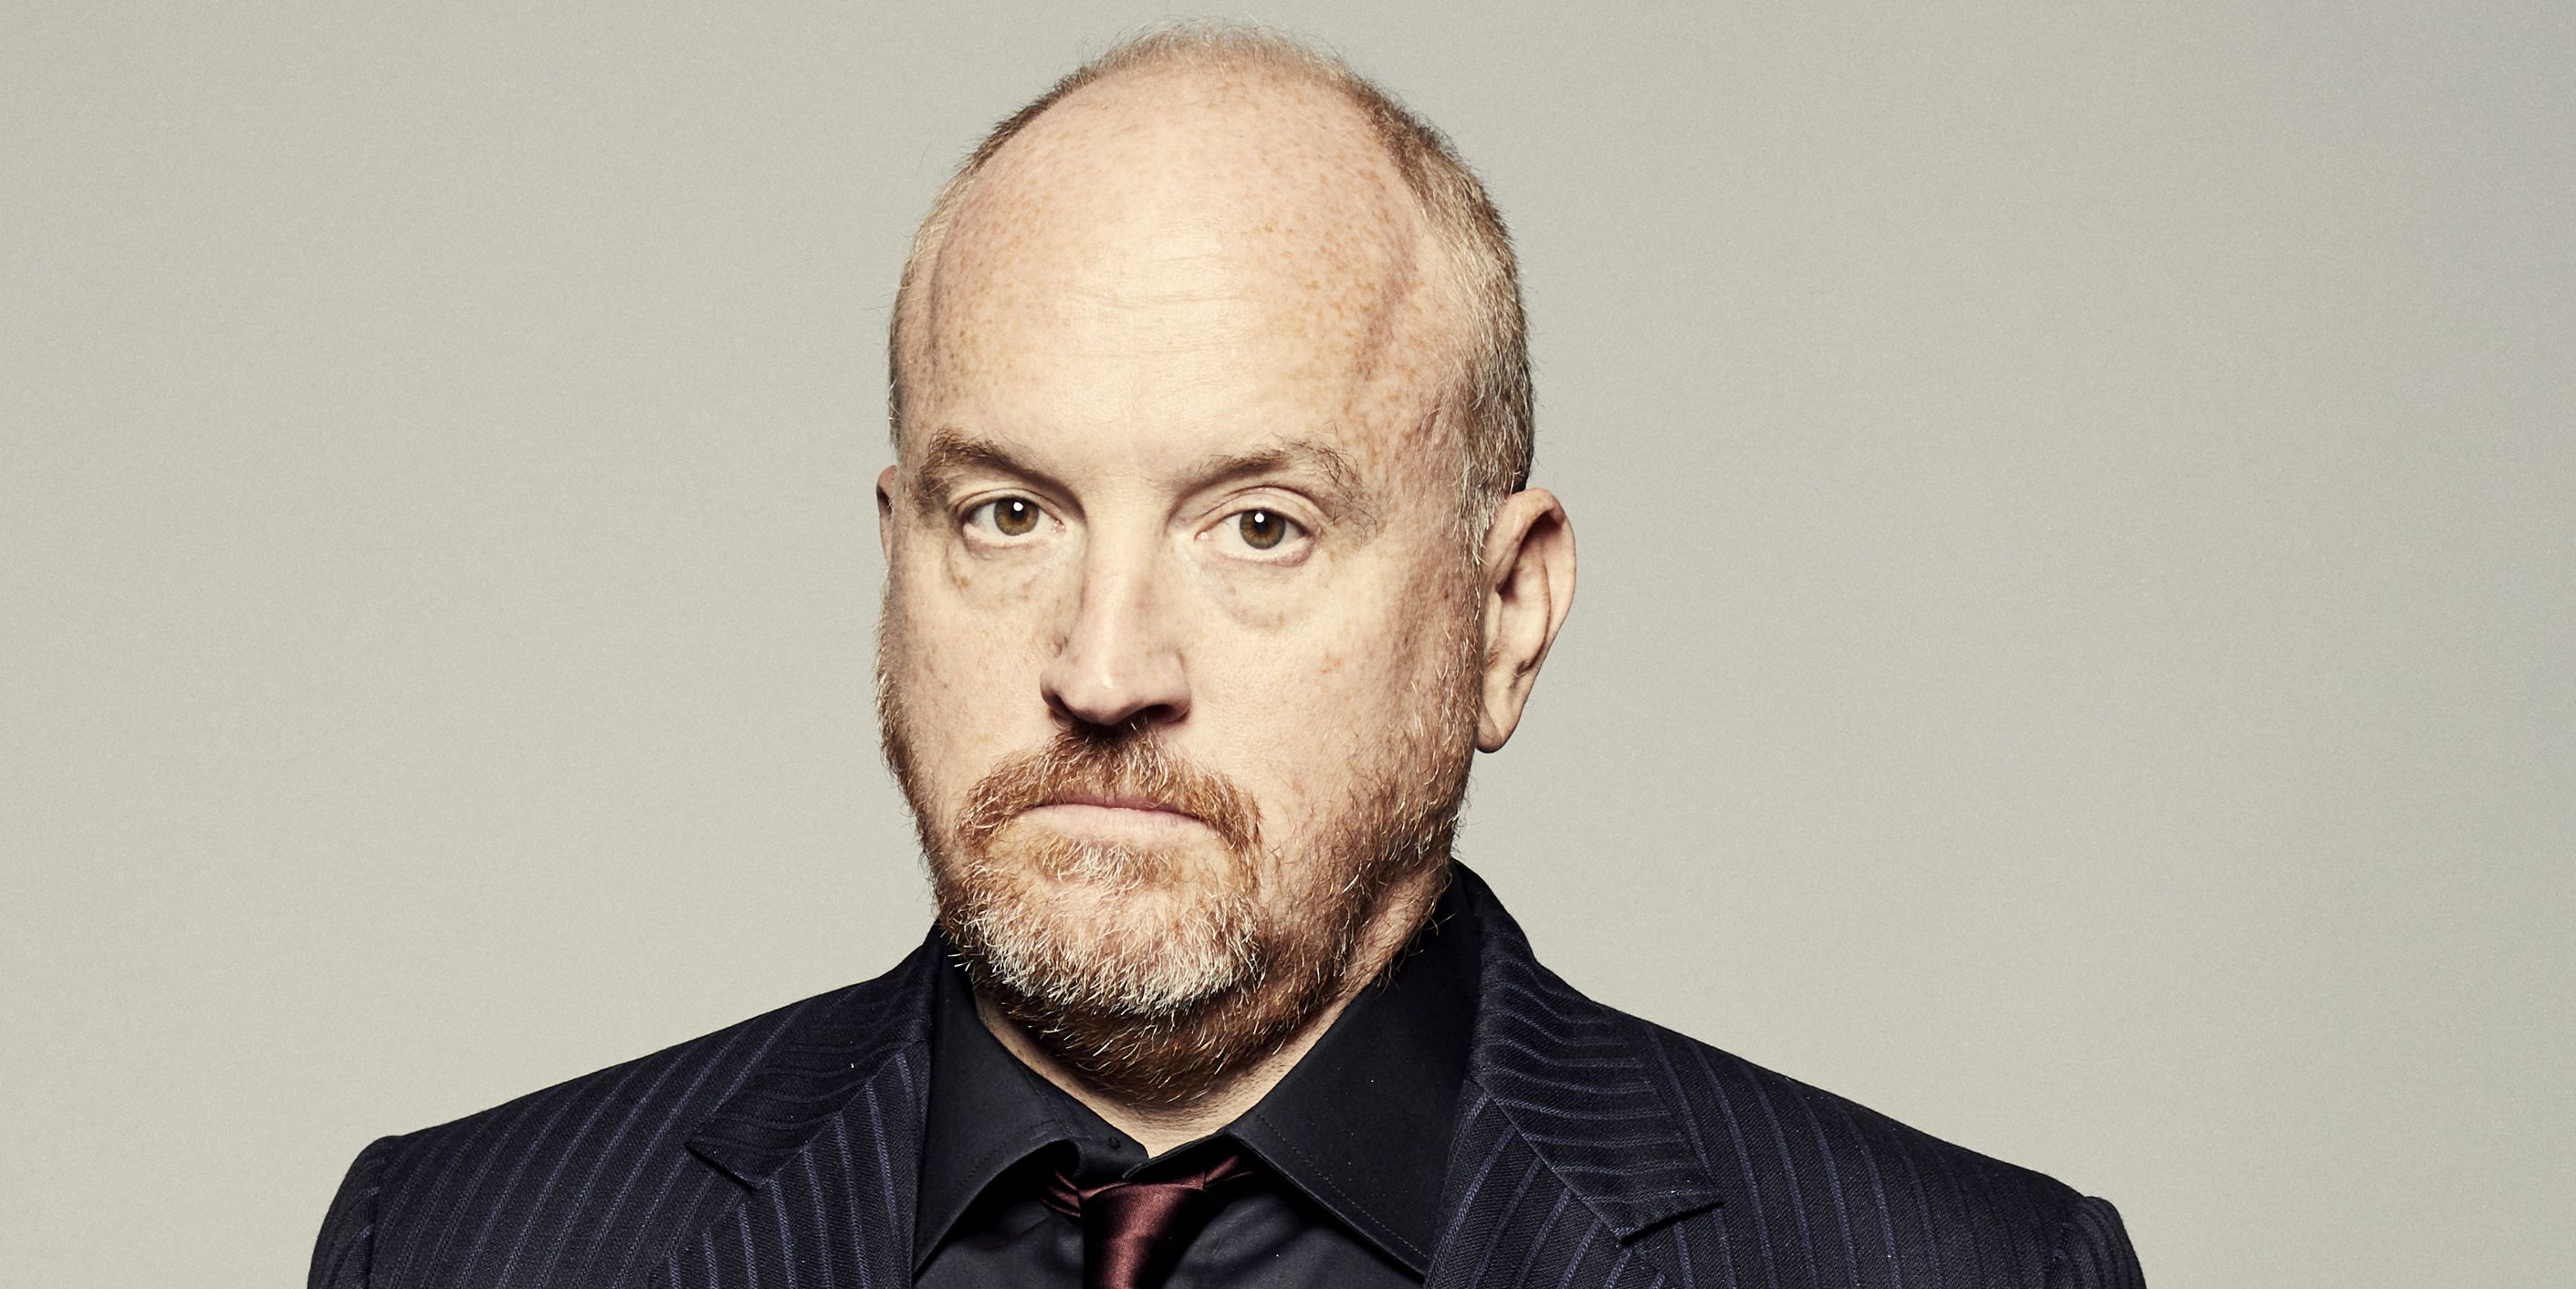 Louis C.K. Used Feminism to Distract From Alleged Sexual Misconduct